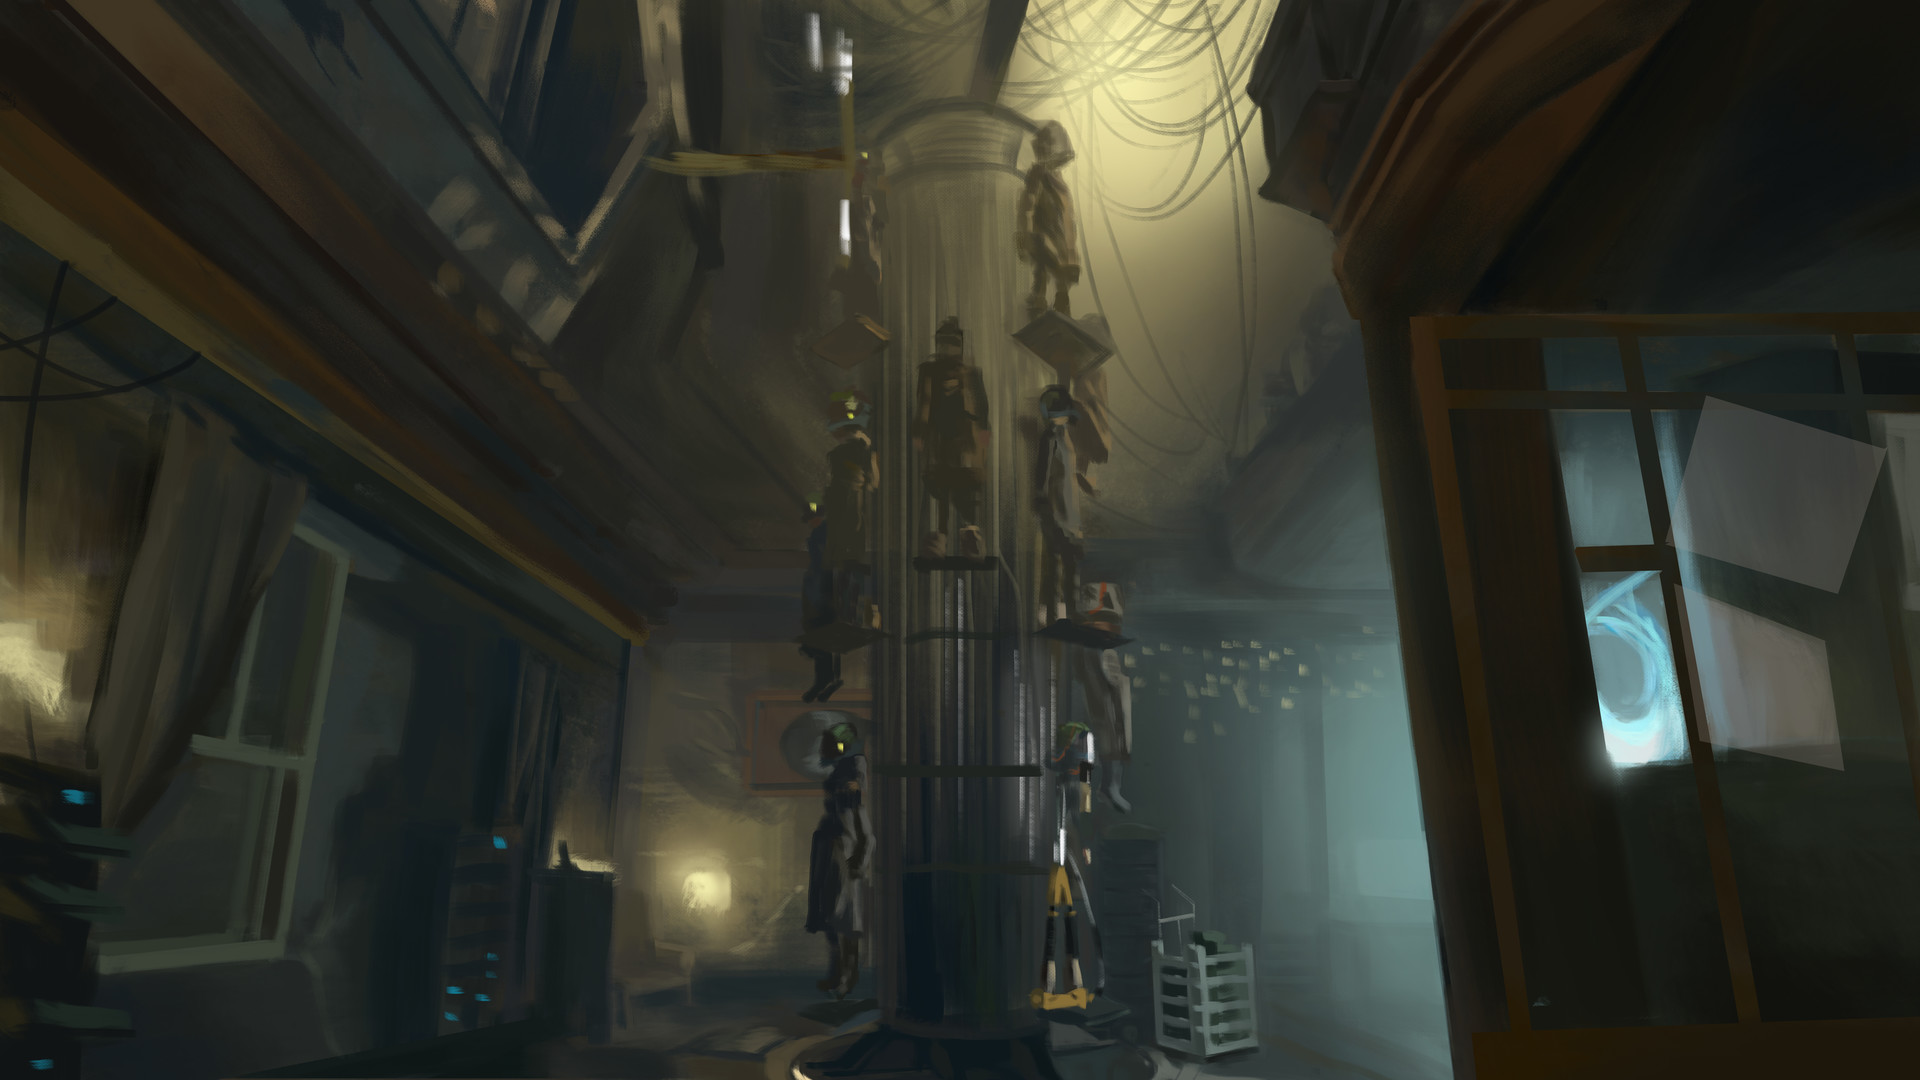 Painted scene from Deus Ex: Mankind Divided